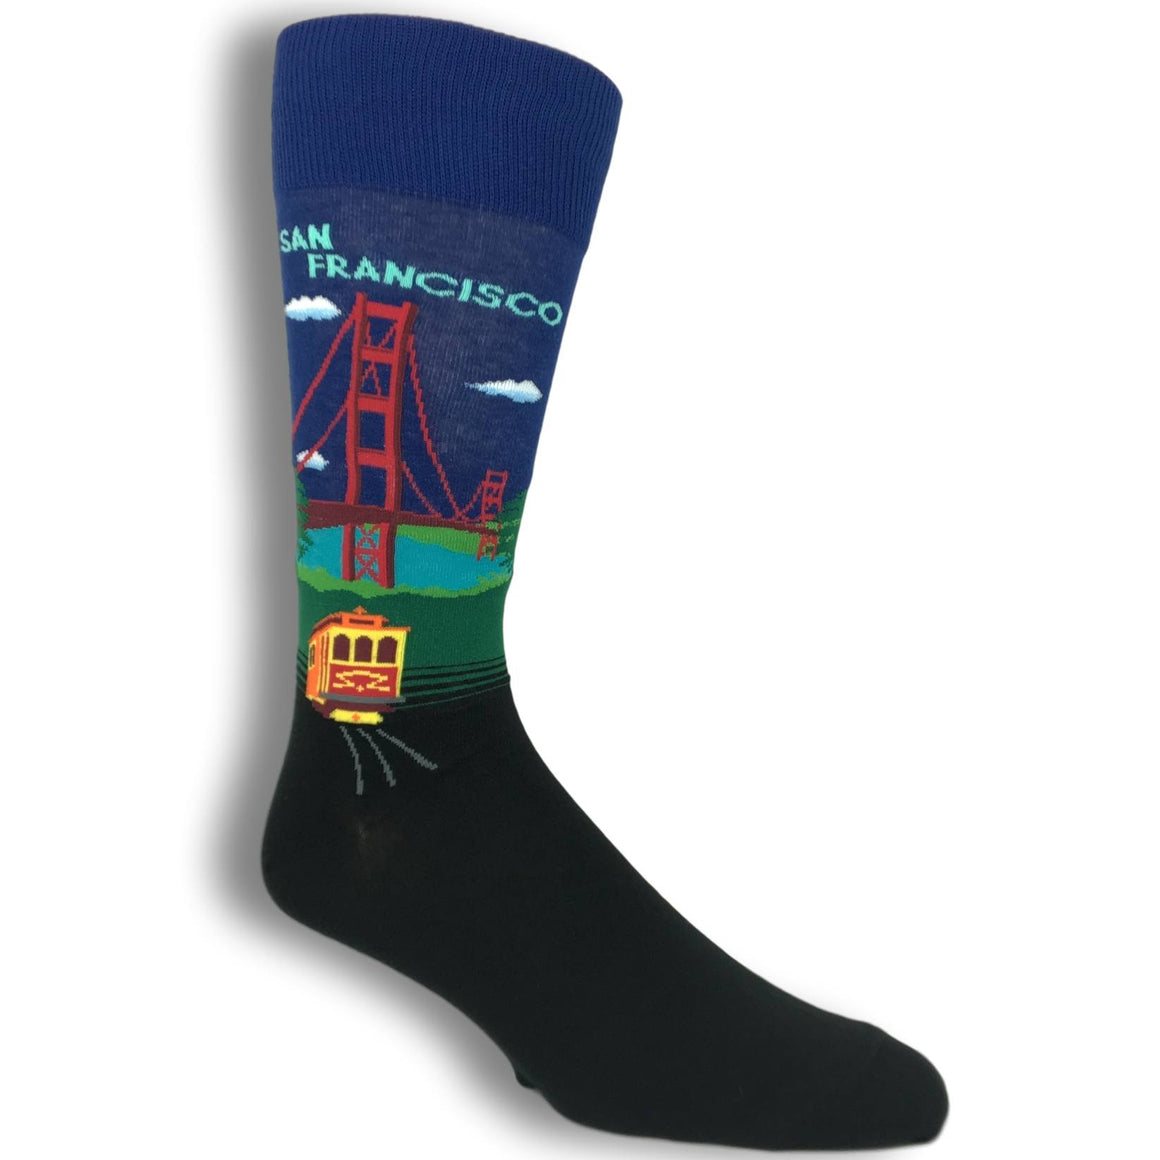 Golden Gate Bridge San Francisco Socks by Hot Sox - The Sock Spot